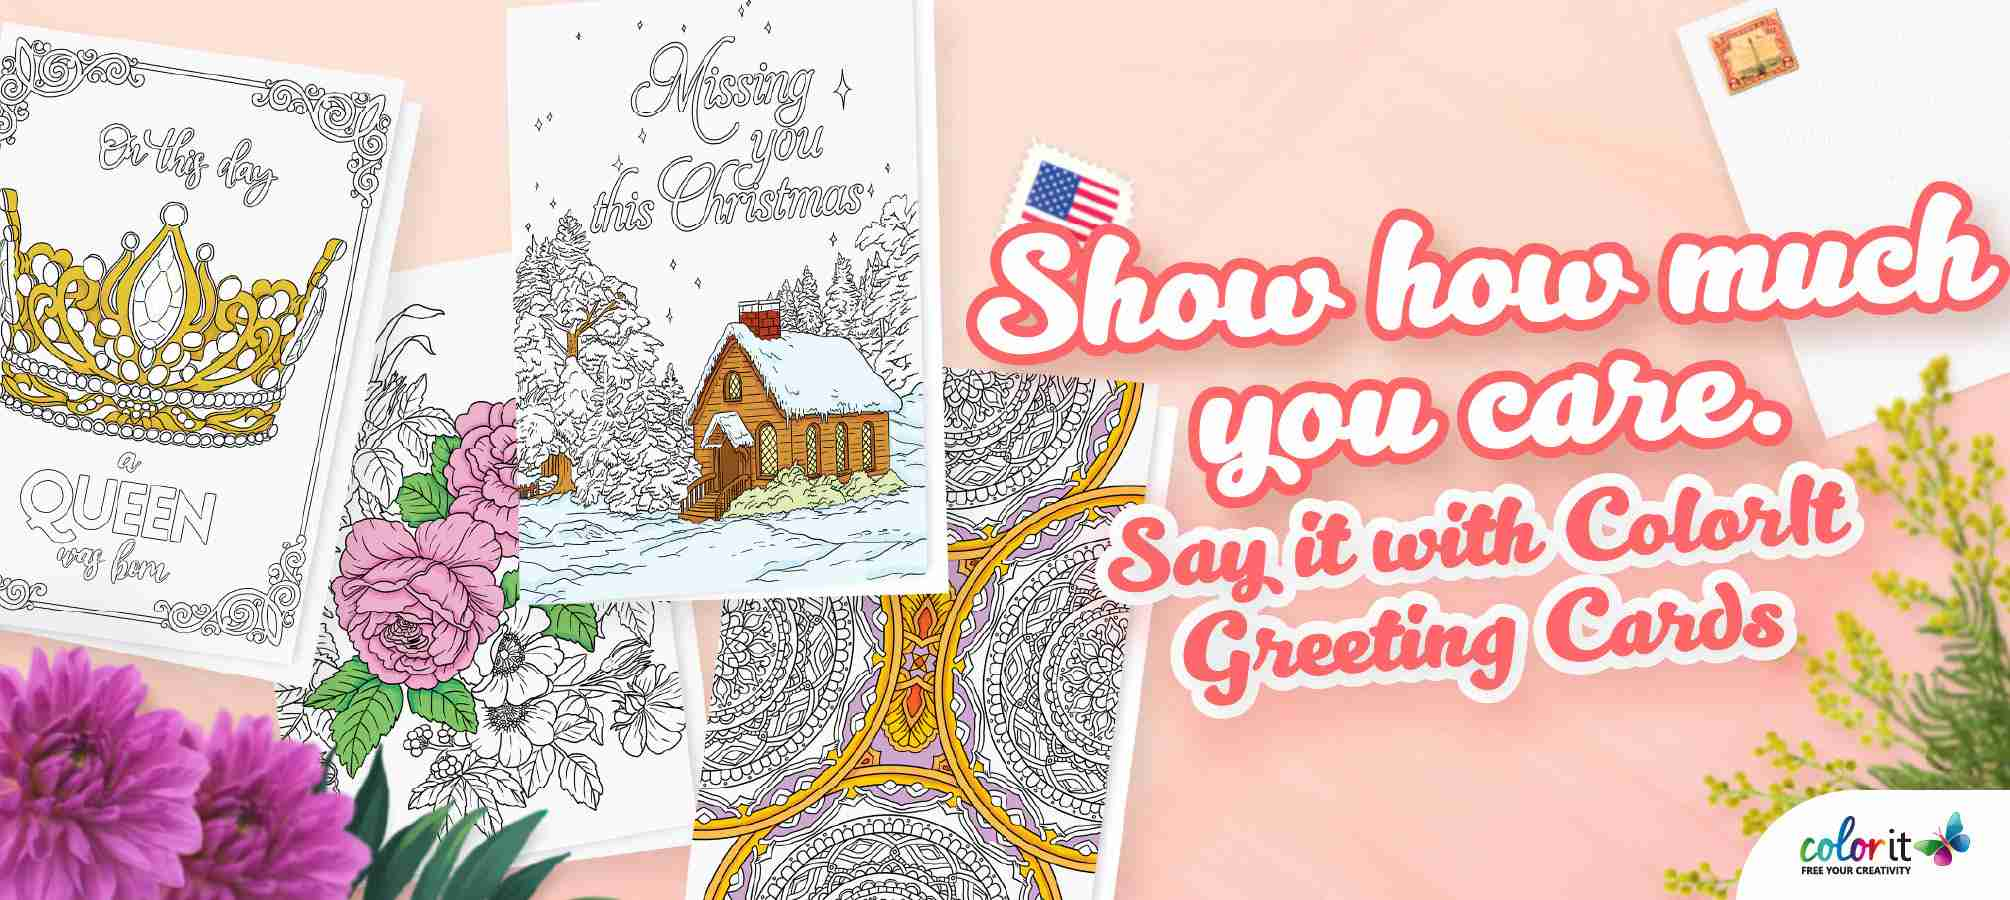 ColorIt Colorable Greeting Cards